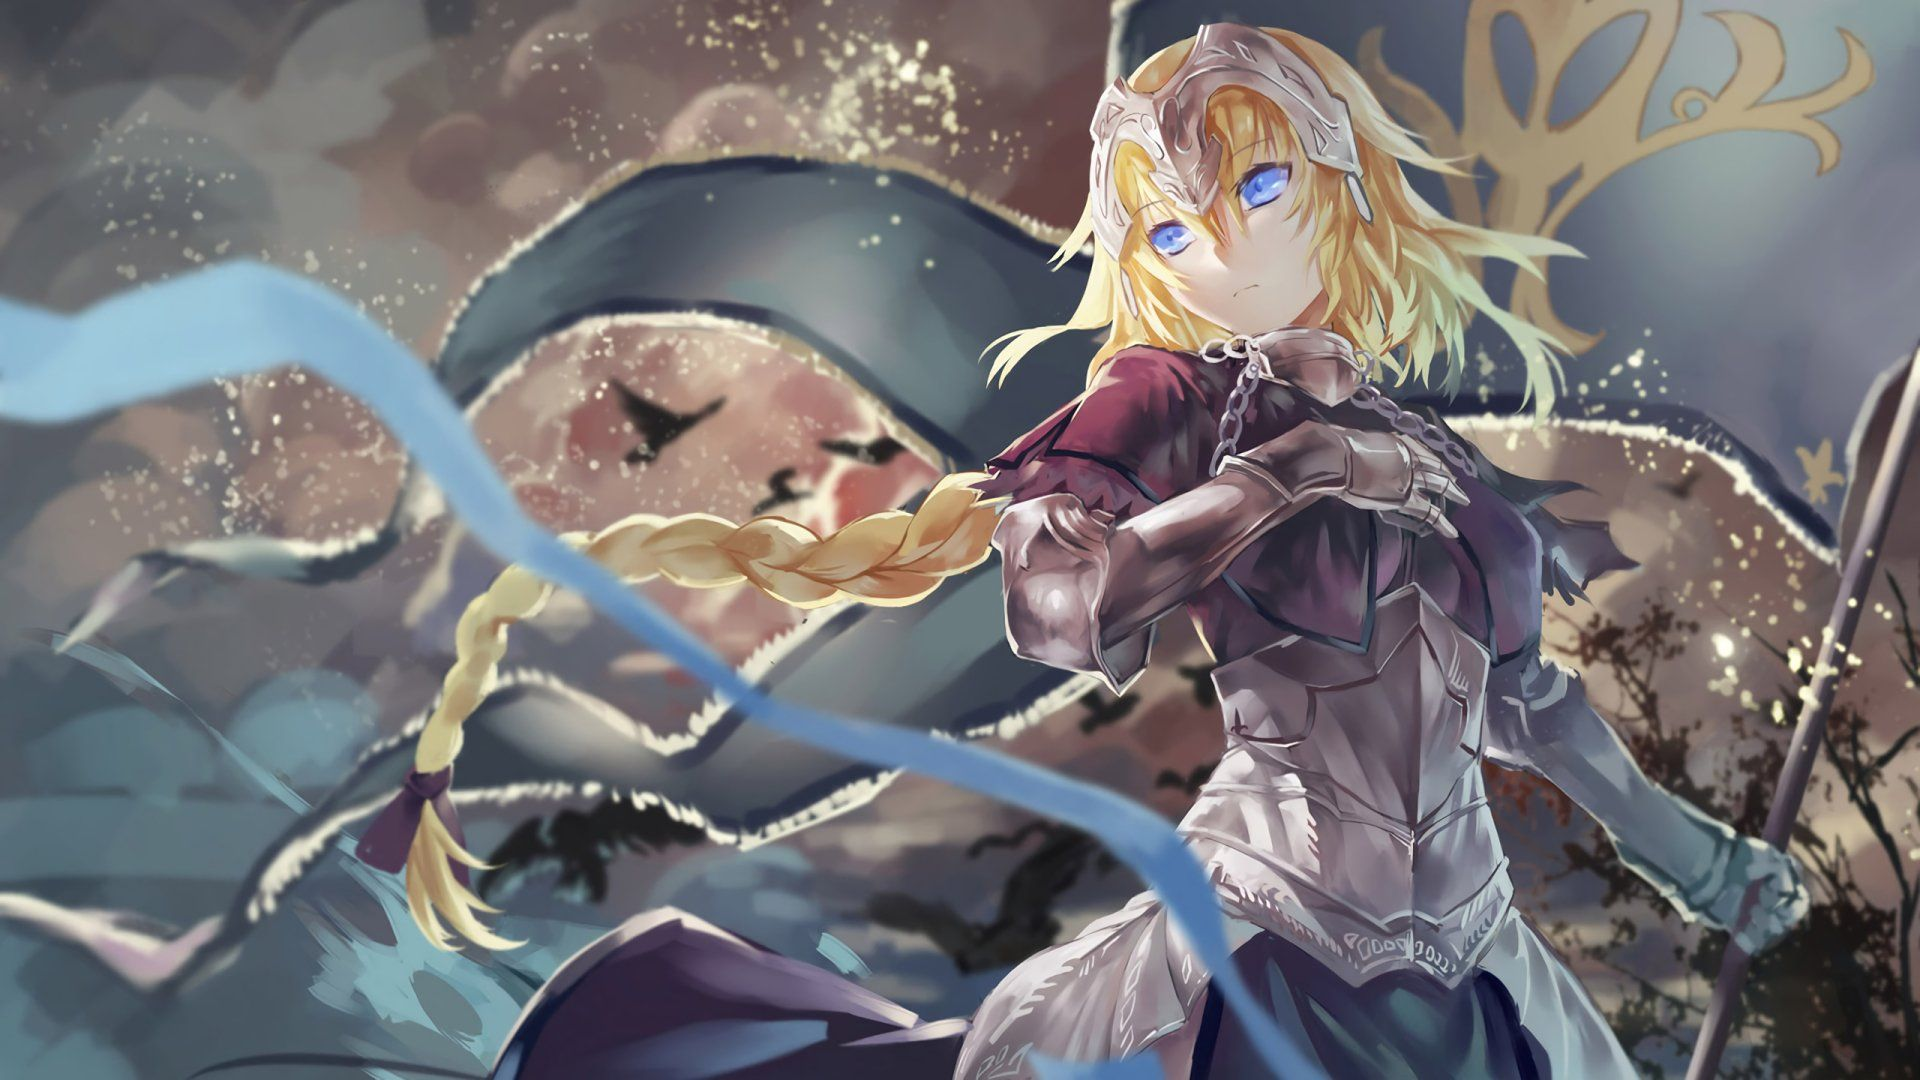 Anime Fate Grand Order Jeanne D Arc Wallpaper Anime Fate Apocrypha Ruler Anime Characters